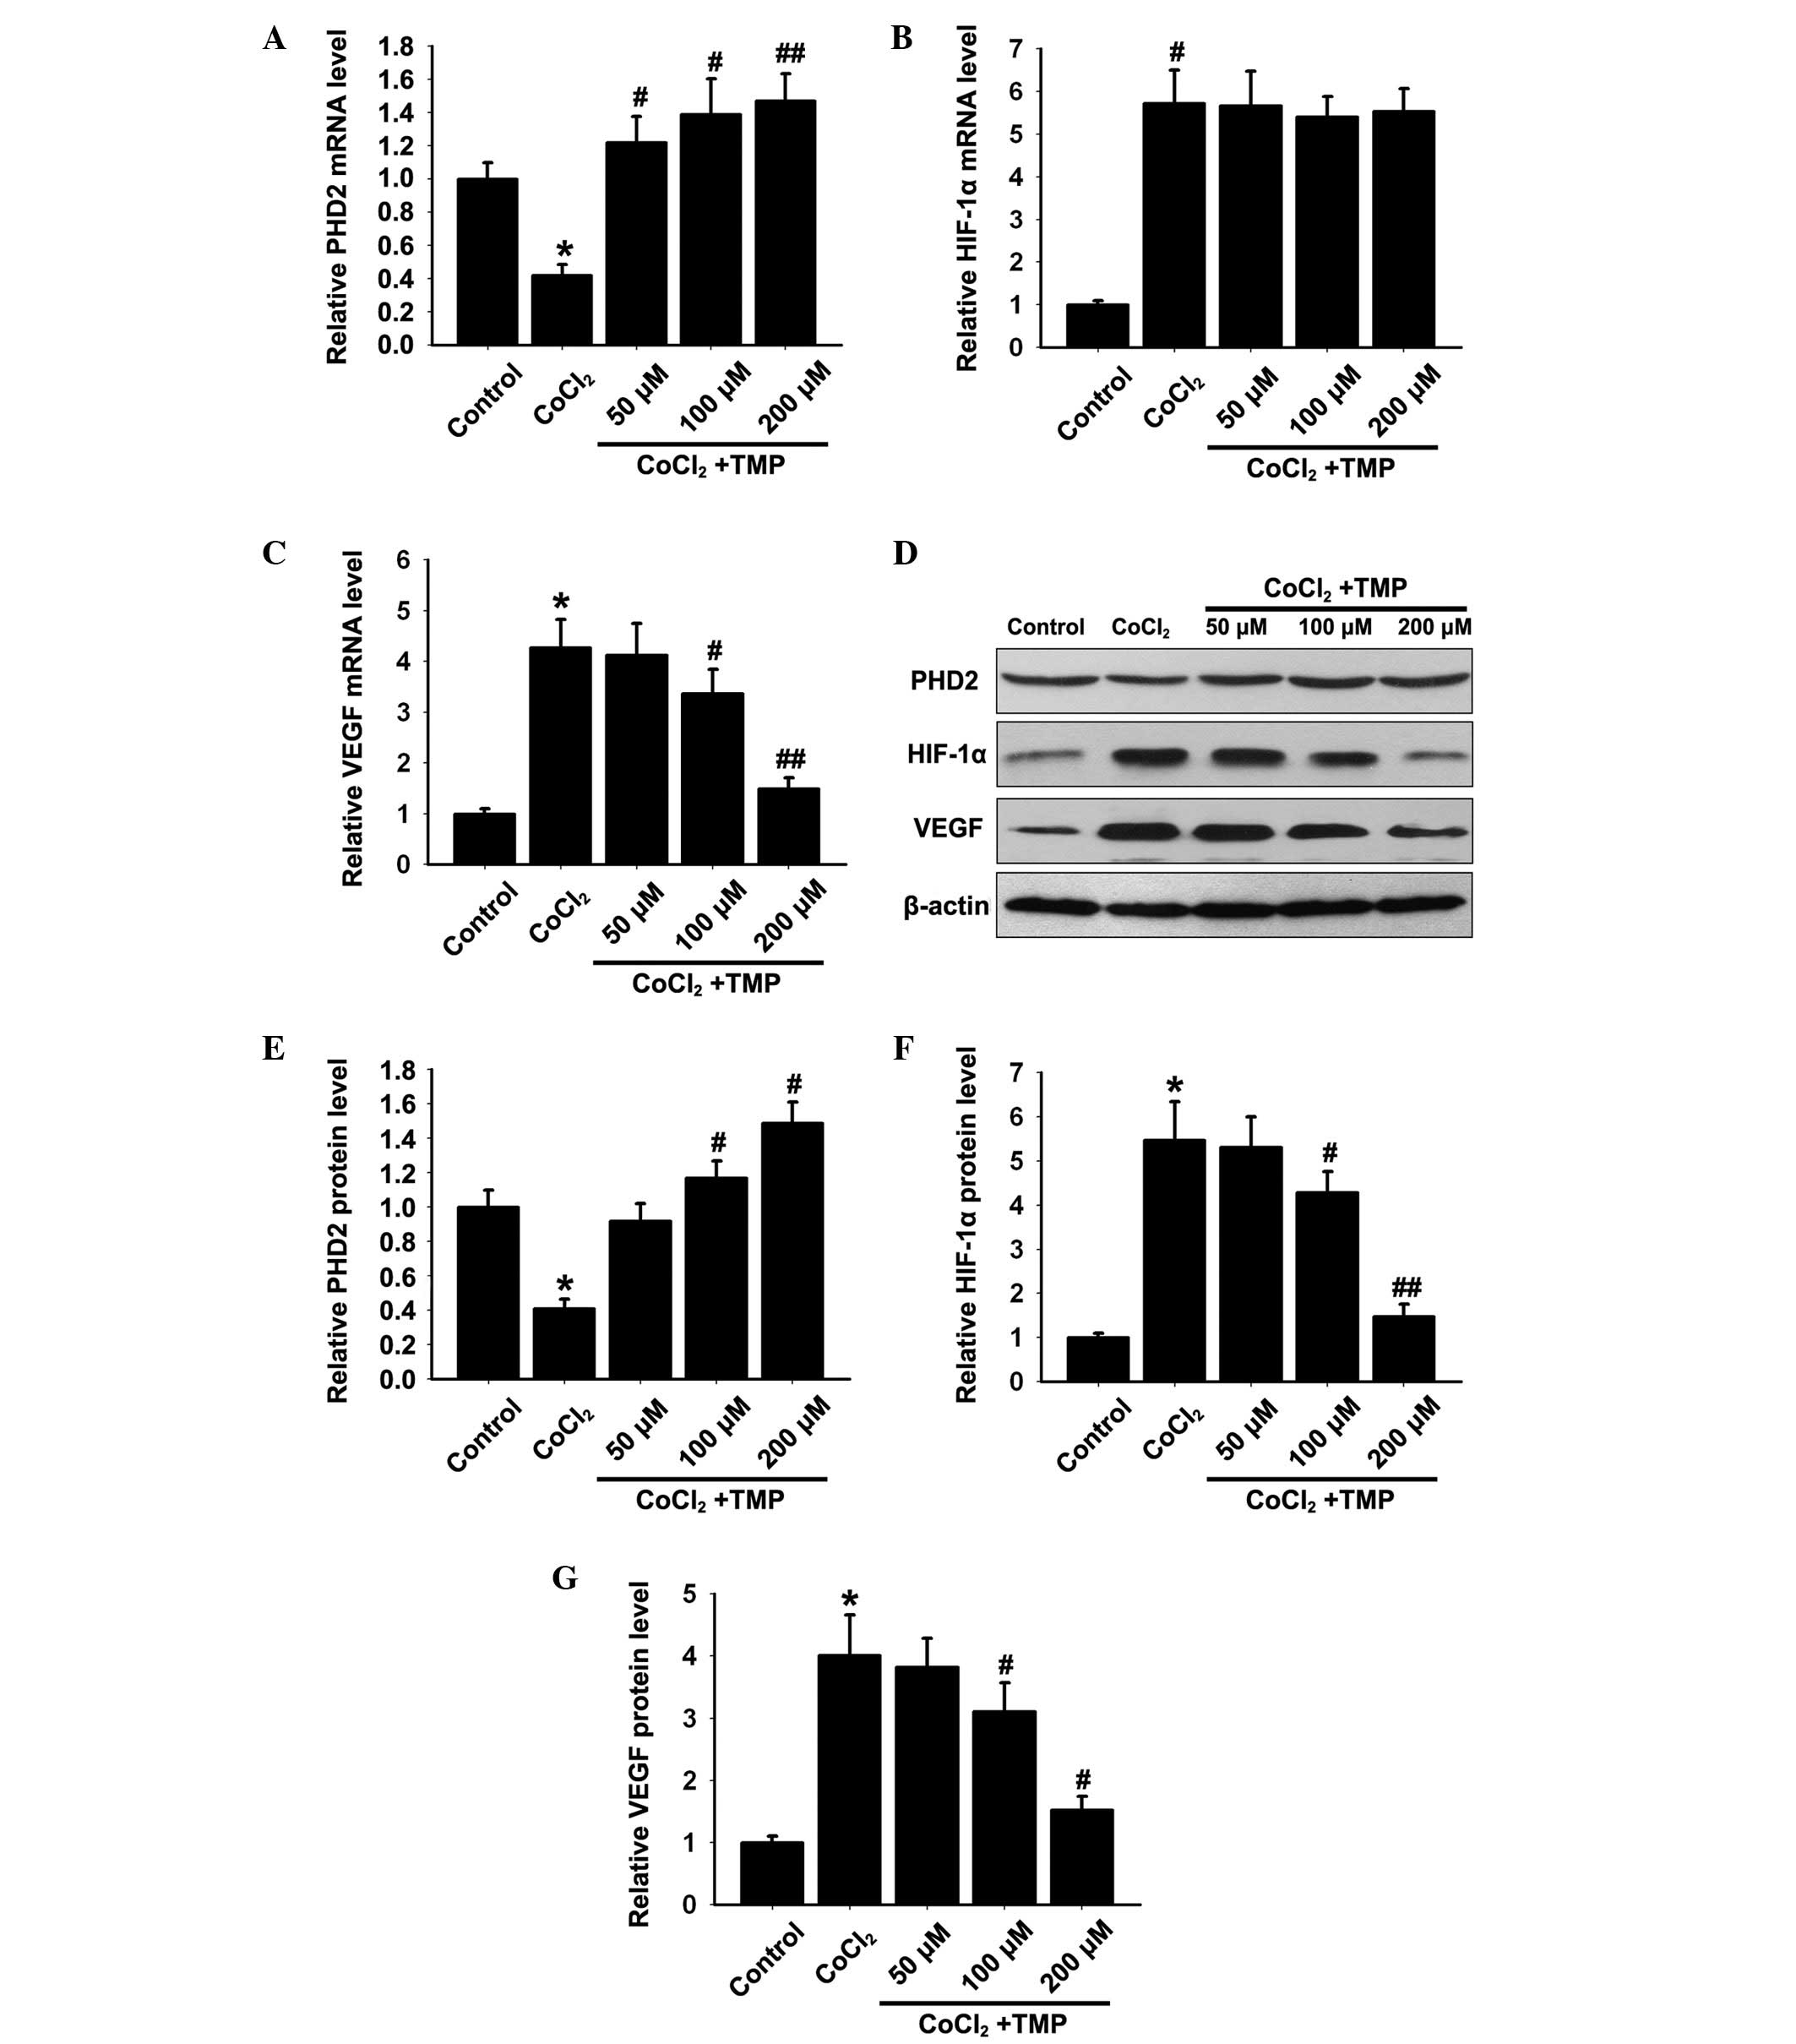 Tetramethylpyrazine Protects Cocl2 Induced Apoptosis In Human Umbilical Vein Endothelial Cells